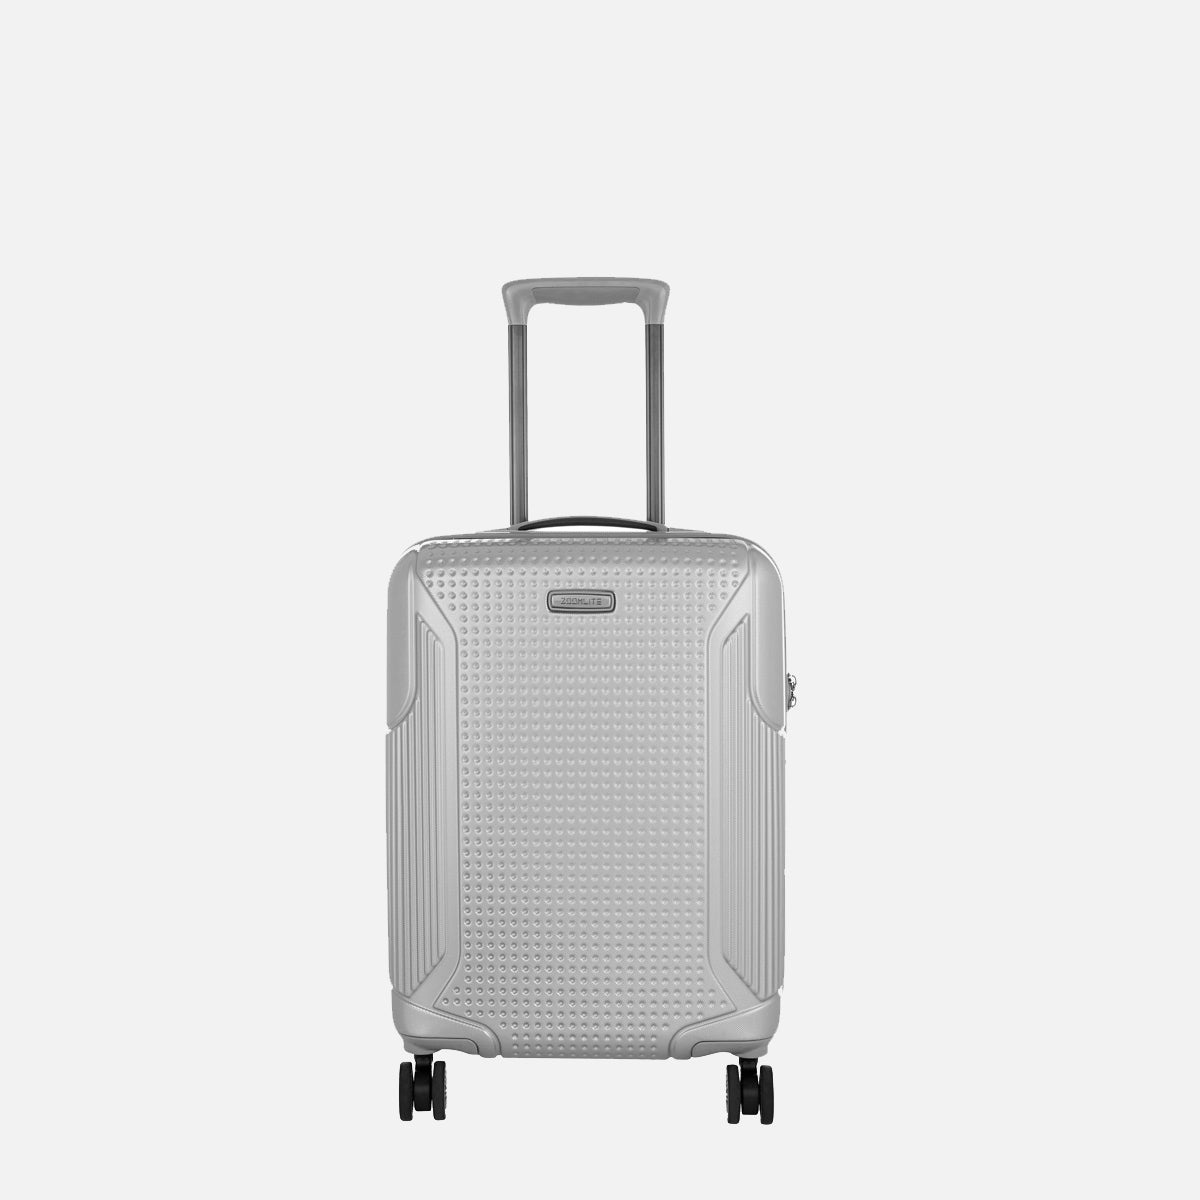 99ede20b15fa Titania 48 cms Cabin Carry On 4 Wheel Spinner Suitcase